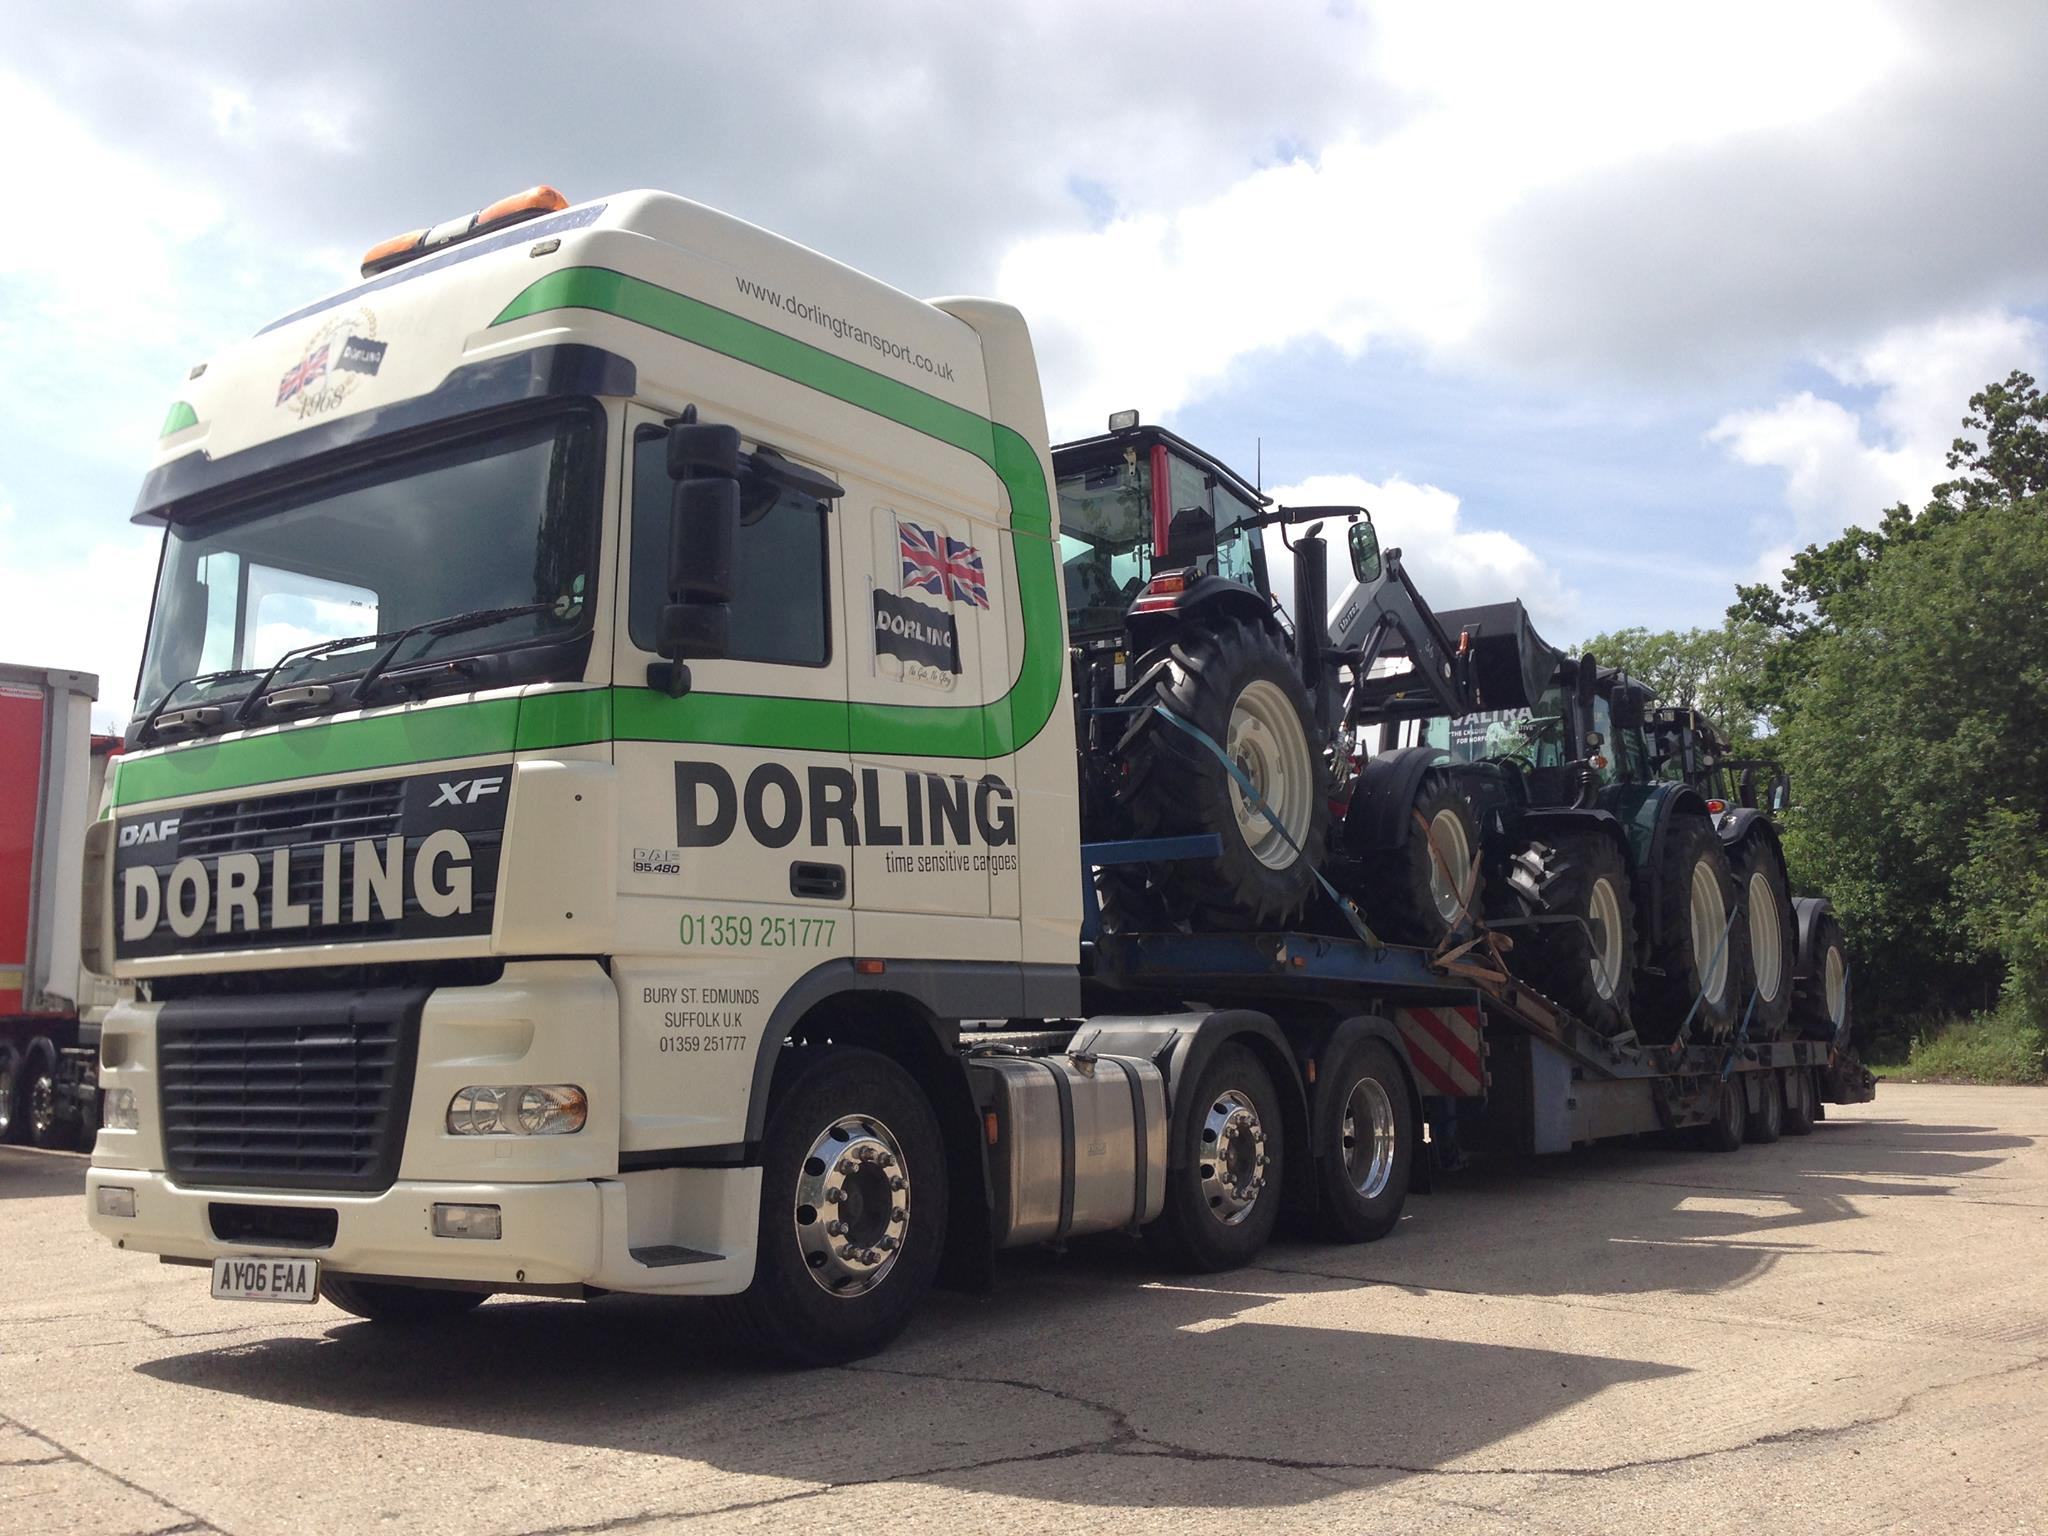 Tractor transport on low loader